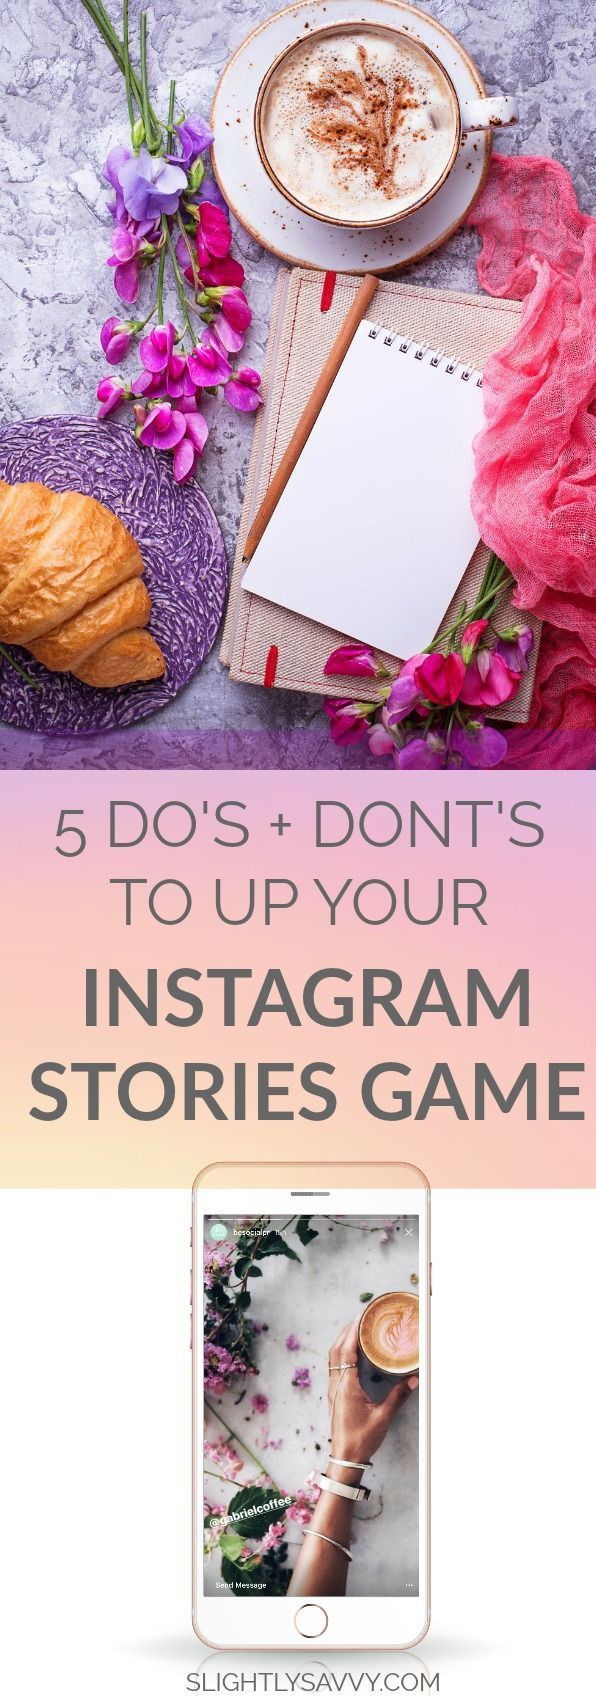 5 Do's and Dont's to Up Your Instagram Stories Game // Slightly Savvy